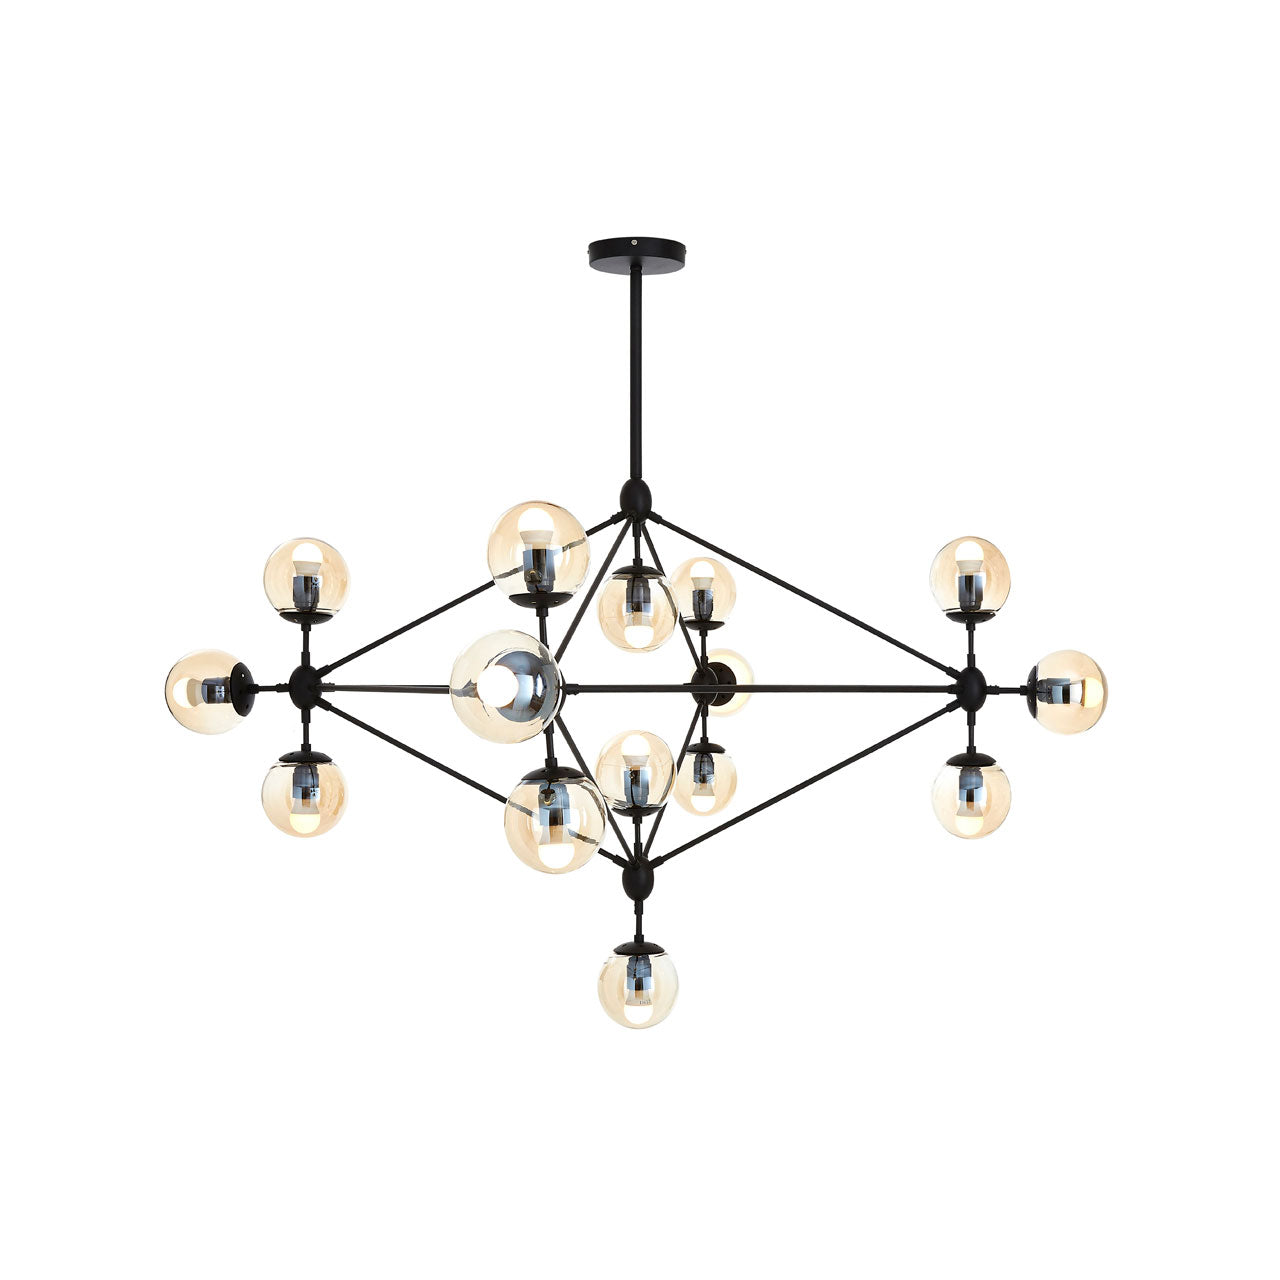 Abira 15 Bulb Pendant Light - Ezzo